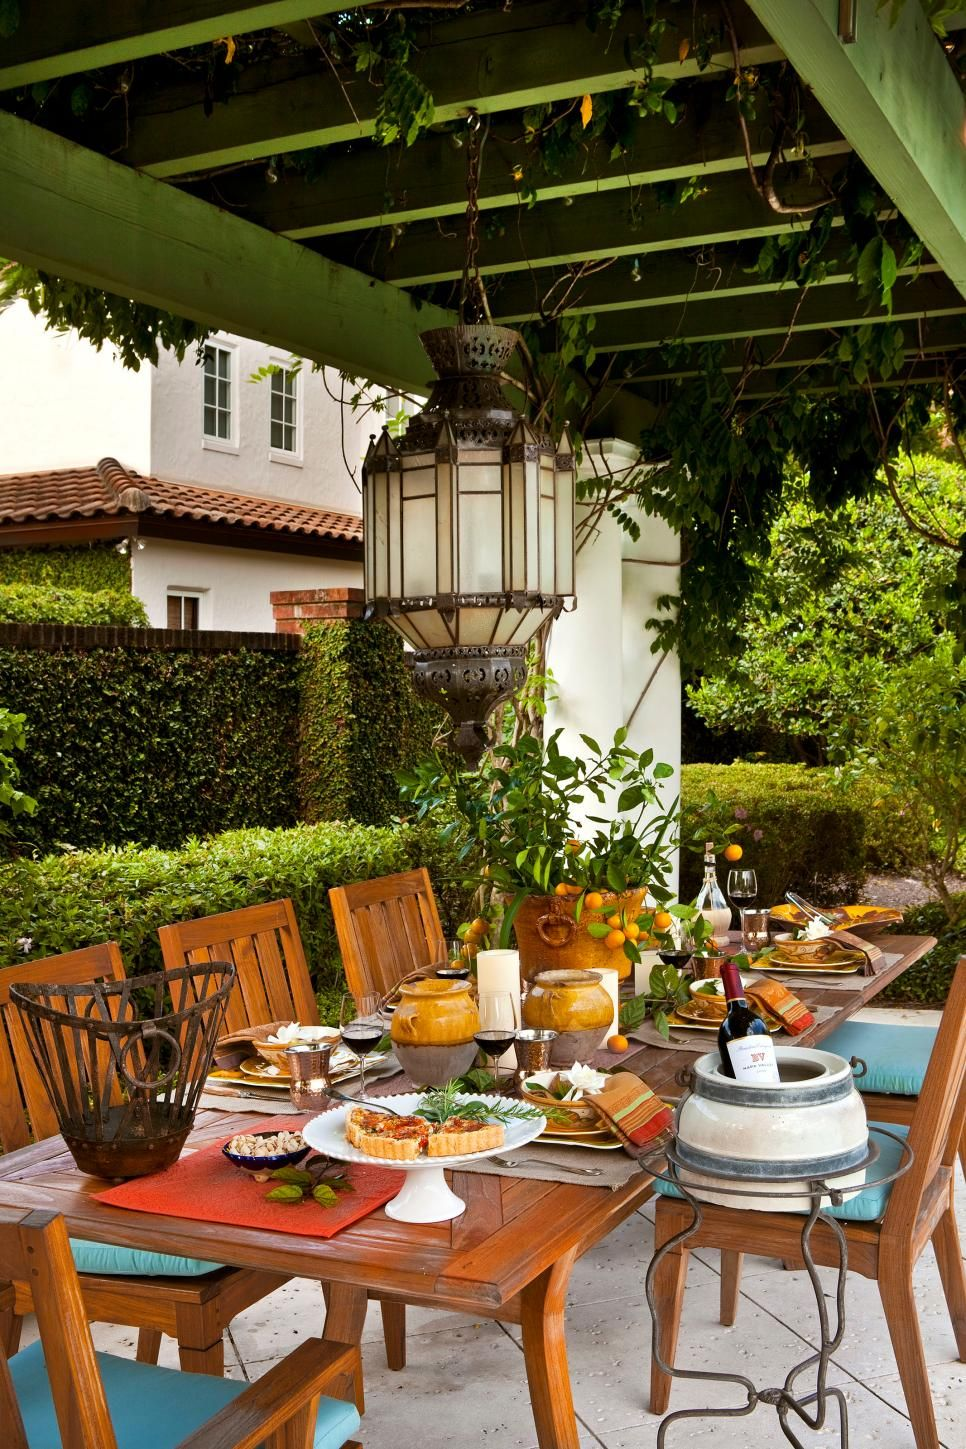 Outdoor Dining Room With Rustic Accents Outdoor Dining Room Outdoor Dining Spaces Outdoor Dining